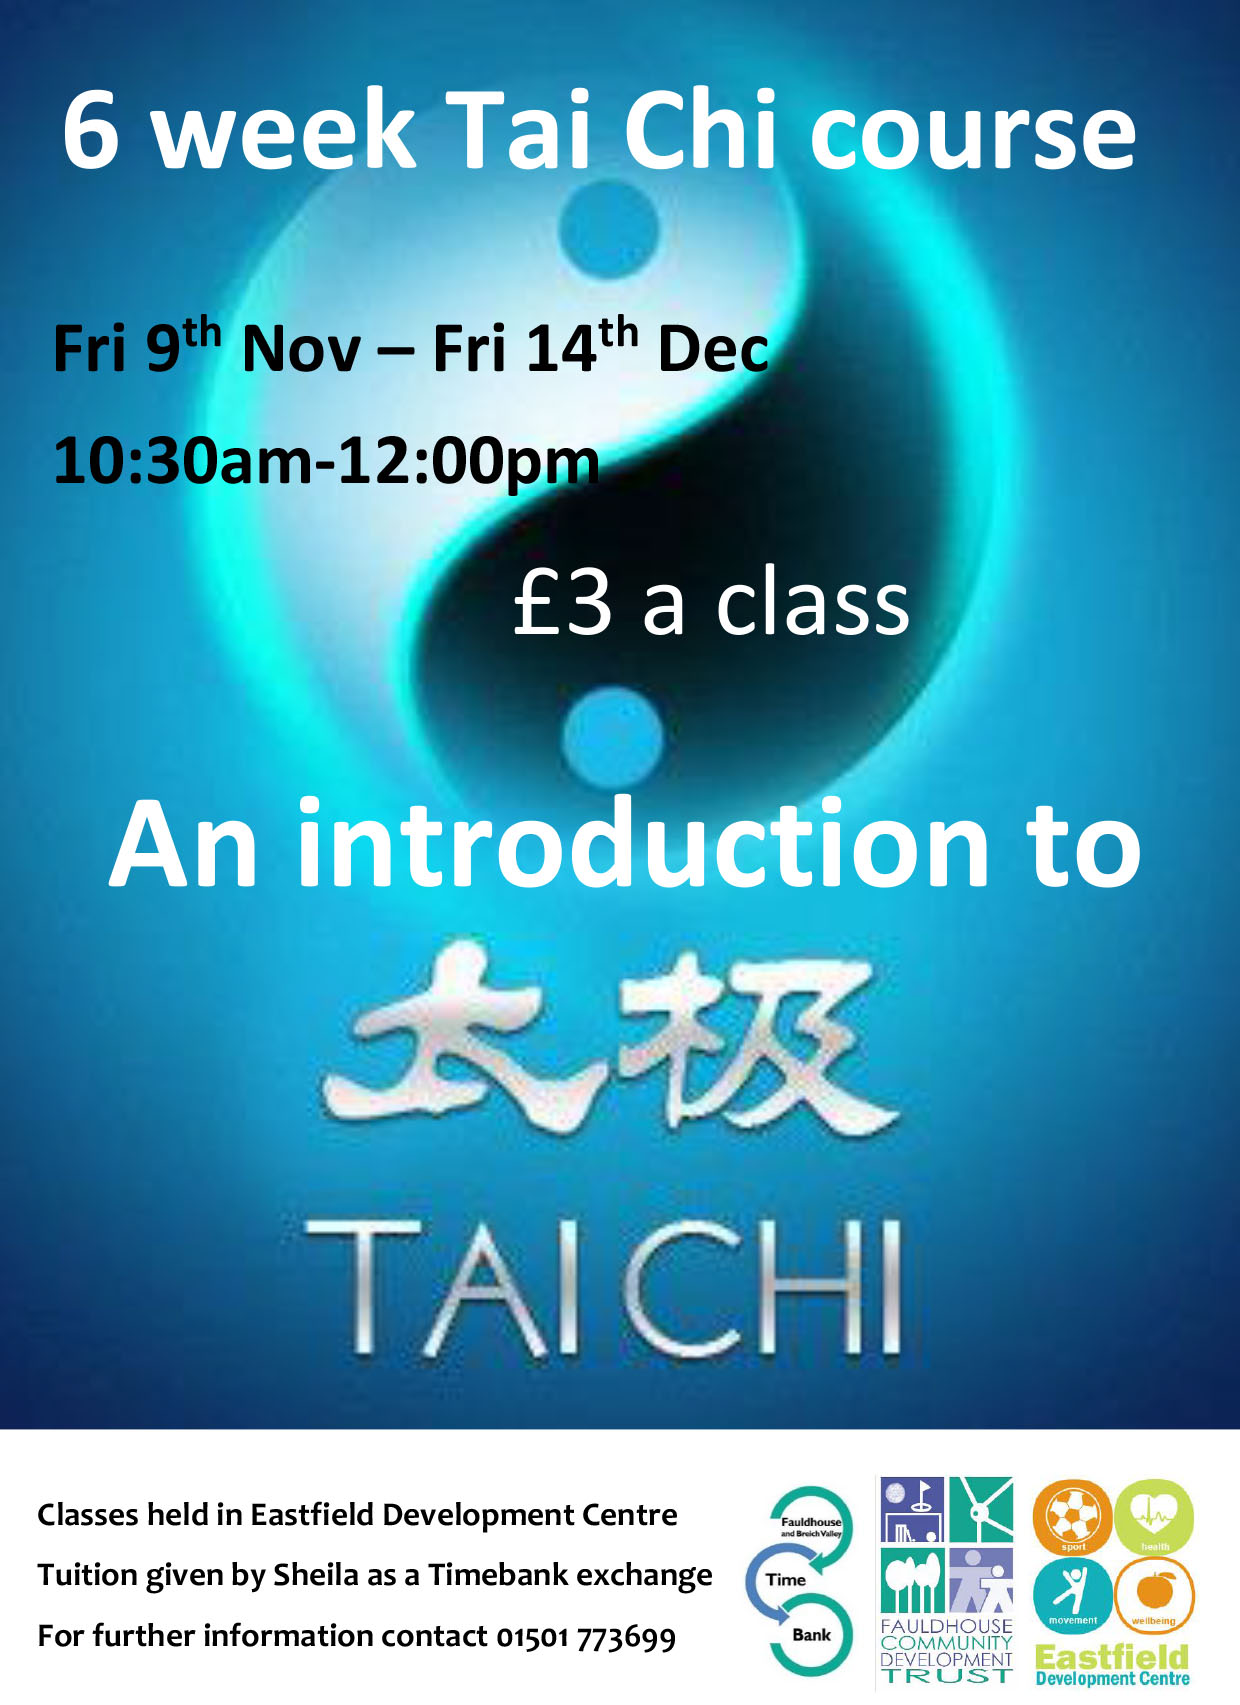 An introduction to Tai Chi @ Eastfield Development Centre